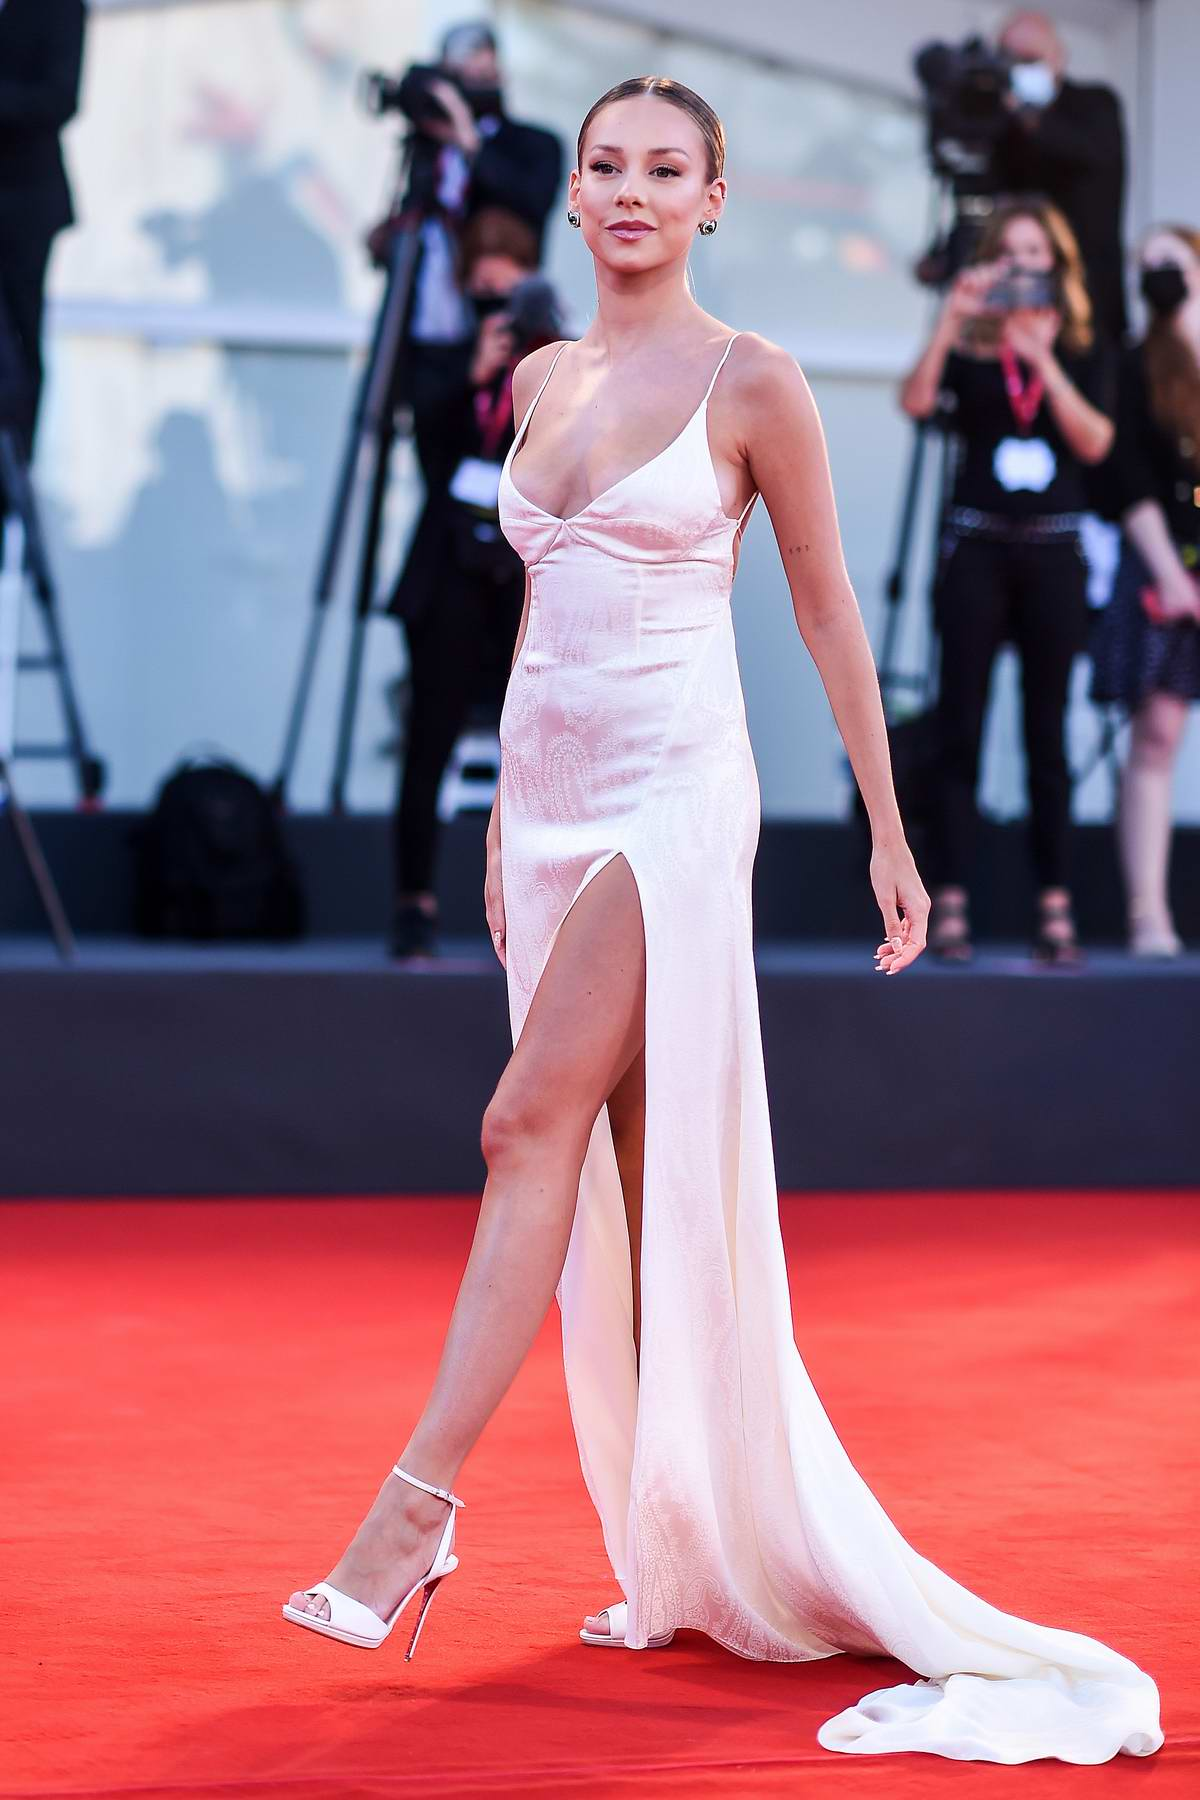 Ester Expósito attends the Opening Ceremony and 'The Ties' Premiere at the 77th Venice Film Festival in Venice, Italy